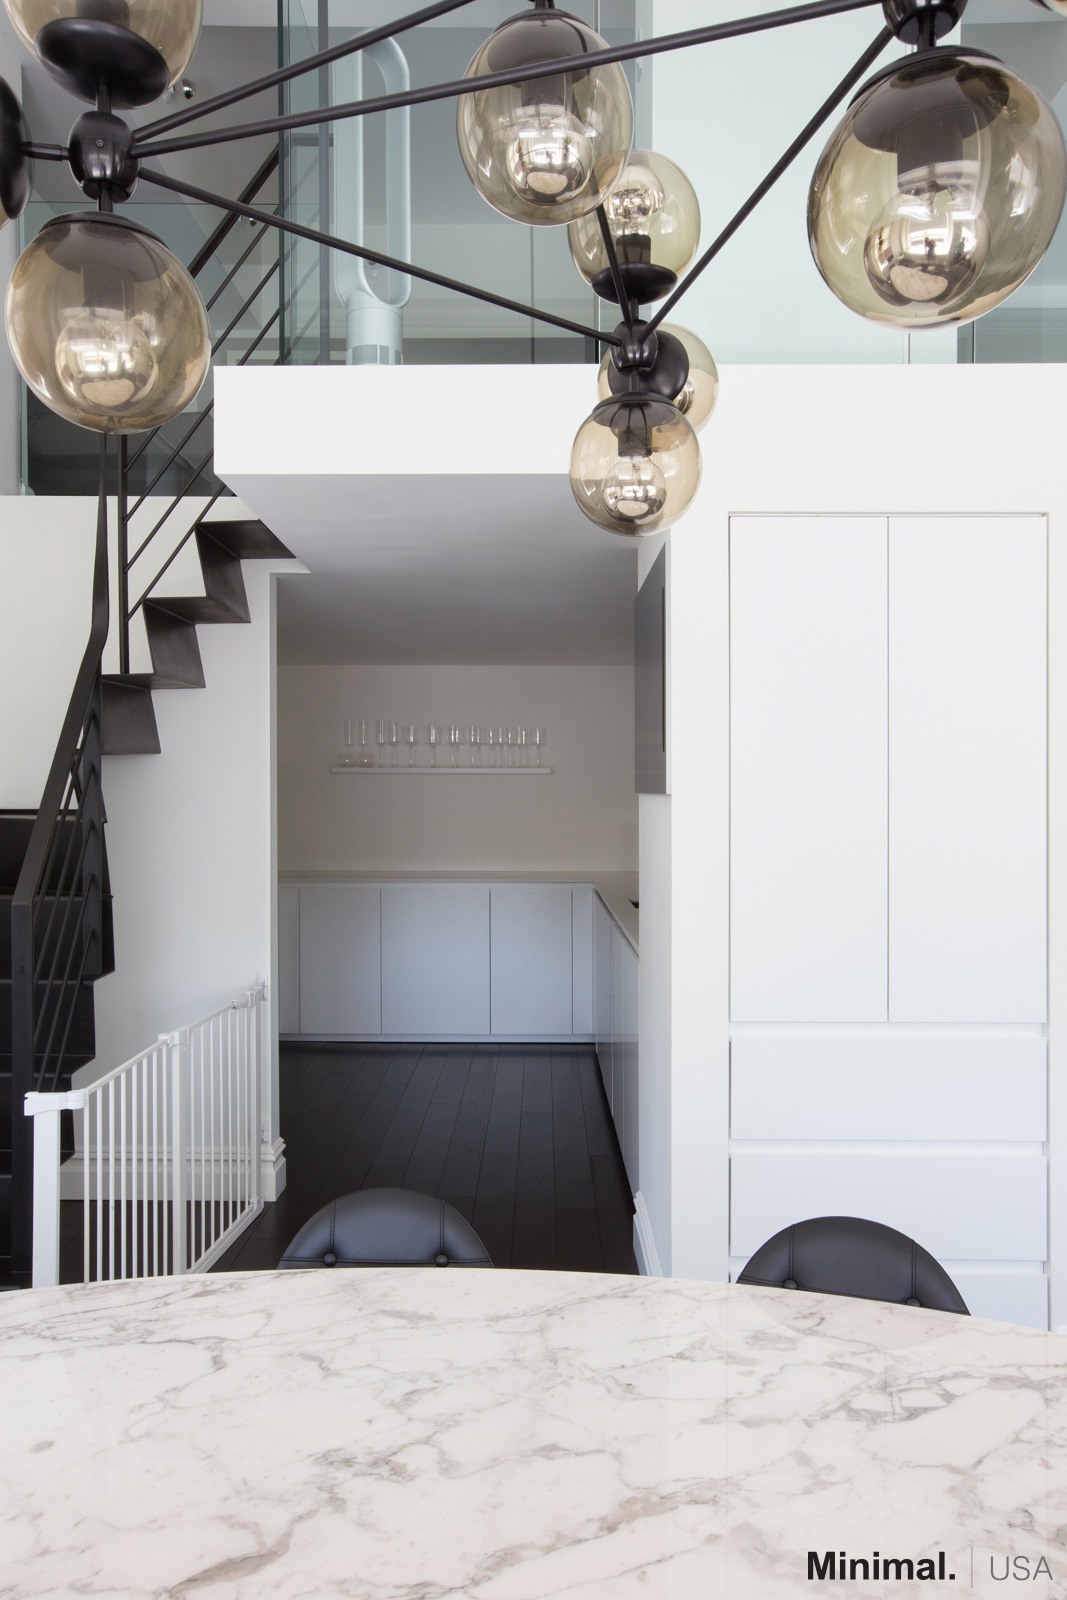 Moving to the left, passing the modern living room, there is the kitchen's entrance with an adjacent pantry cleverly embedded in the wall, becoming an integral part of the column.